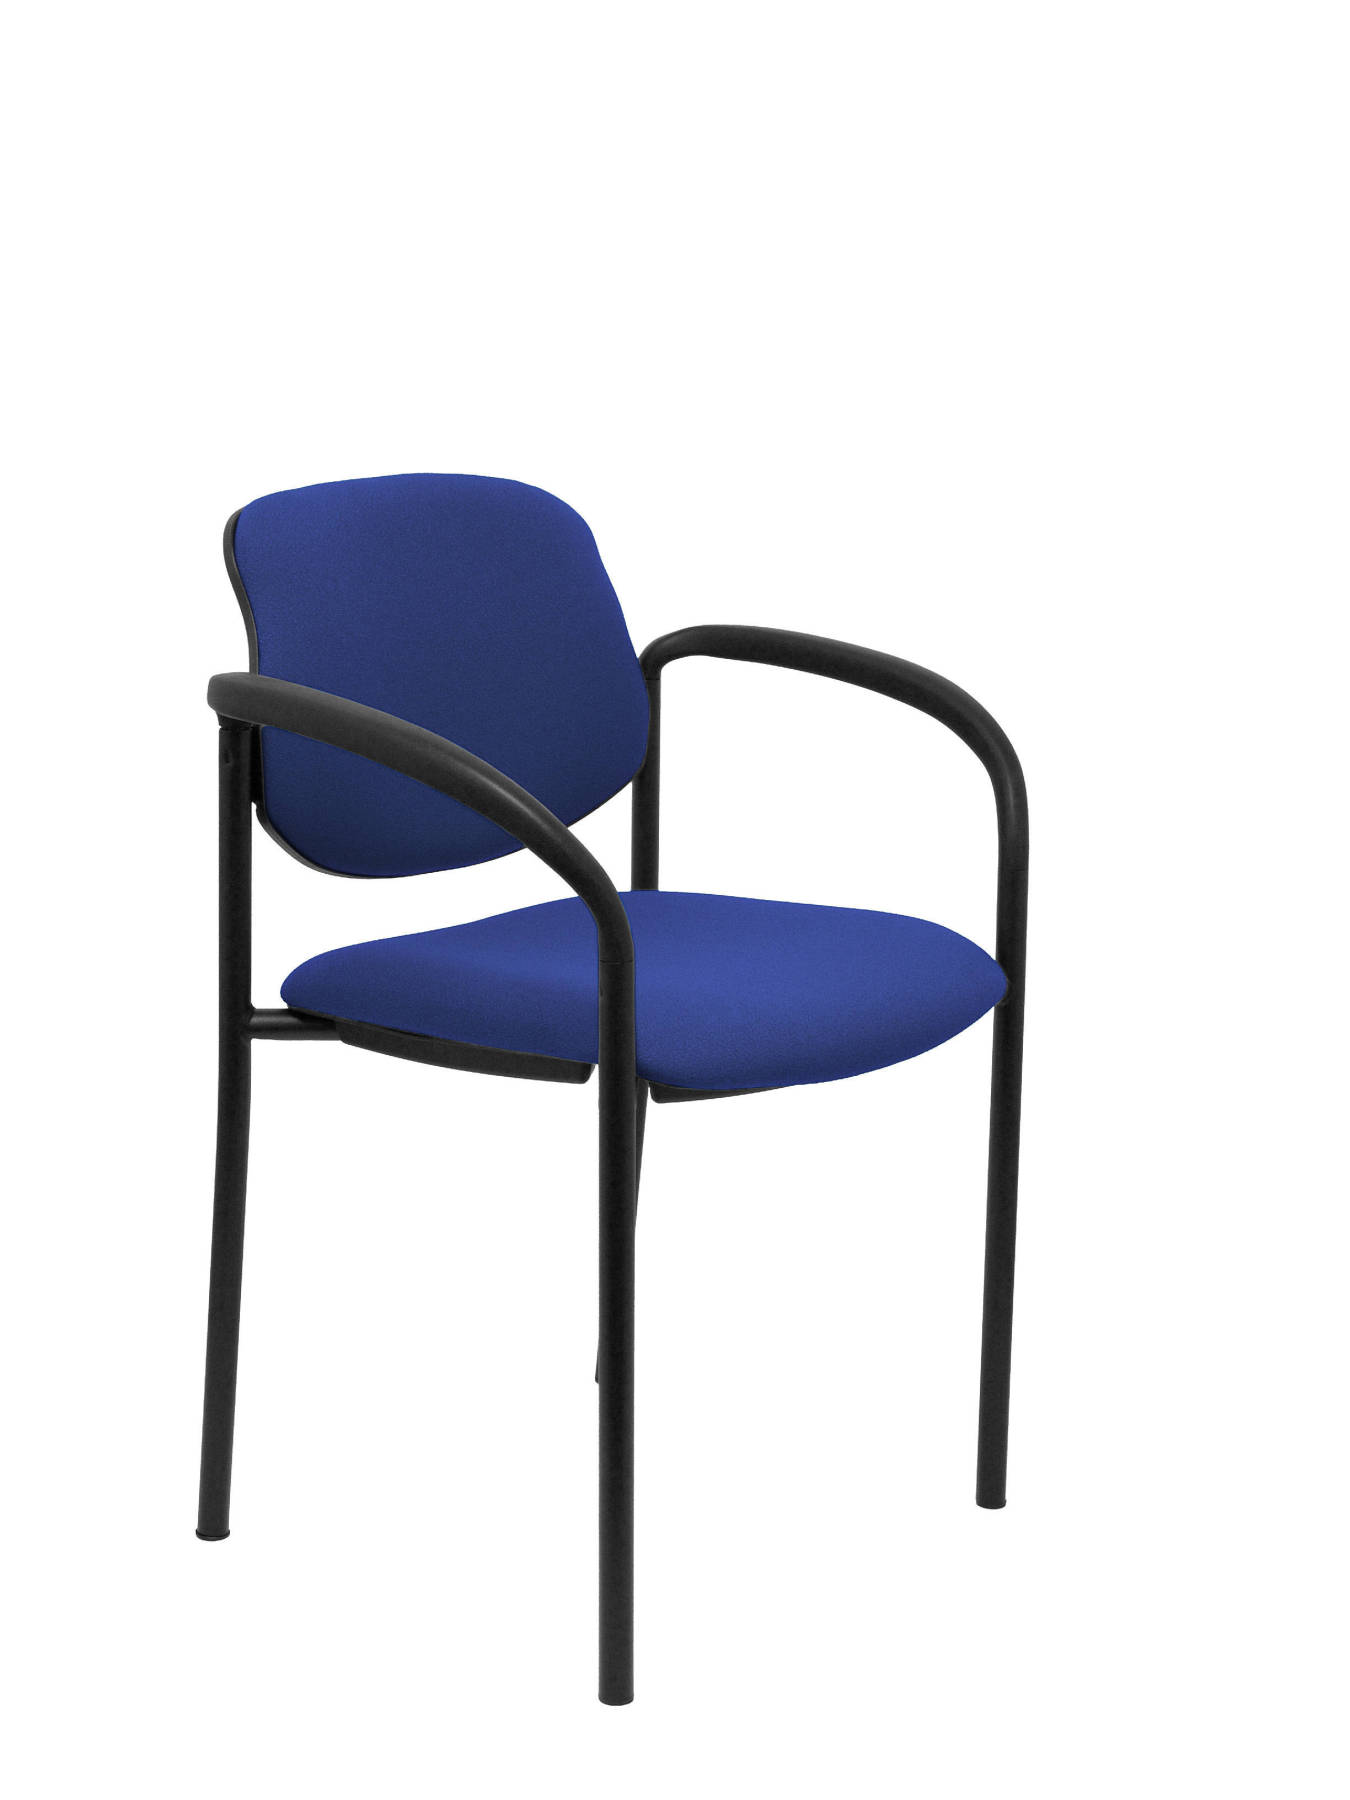 Visitor Chair 4's Topsy, With Arms And Estructrua Negro-up Seat And Backstop Upholstered In BALI Tissue Color Blue PIQU